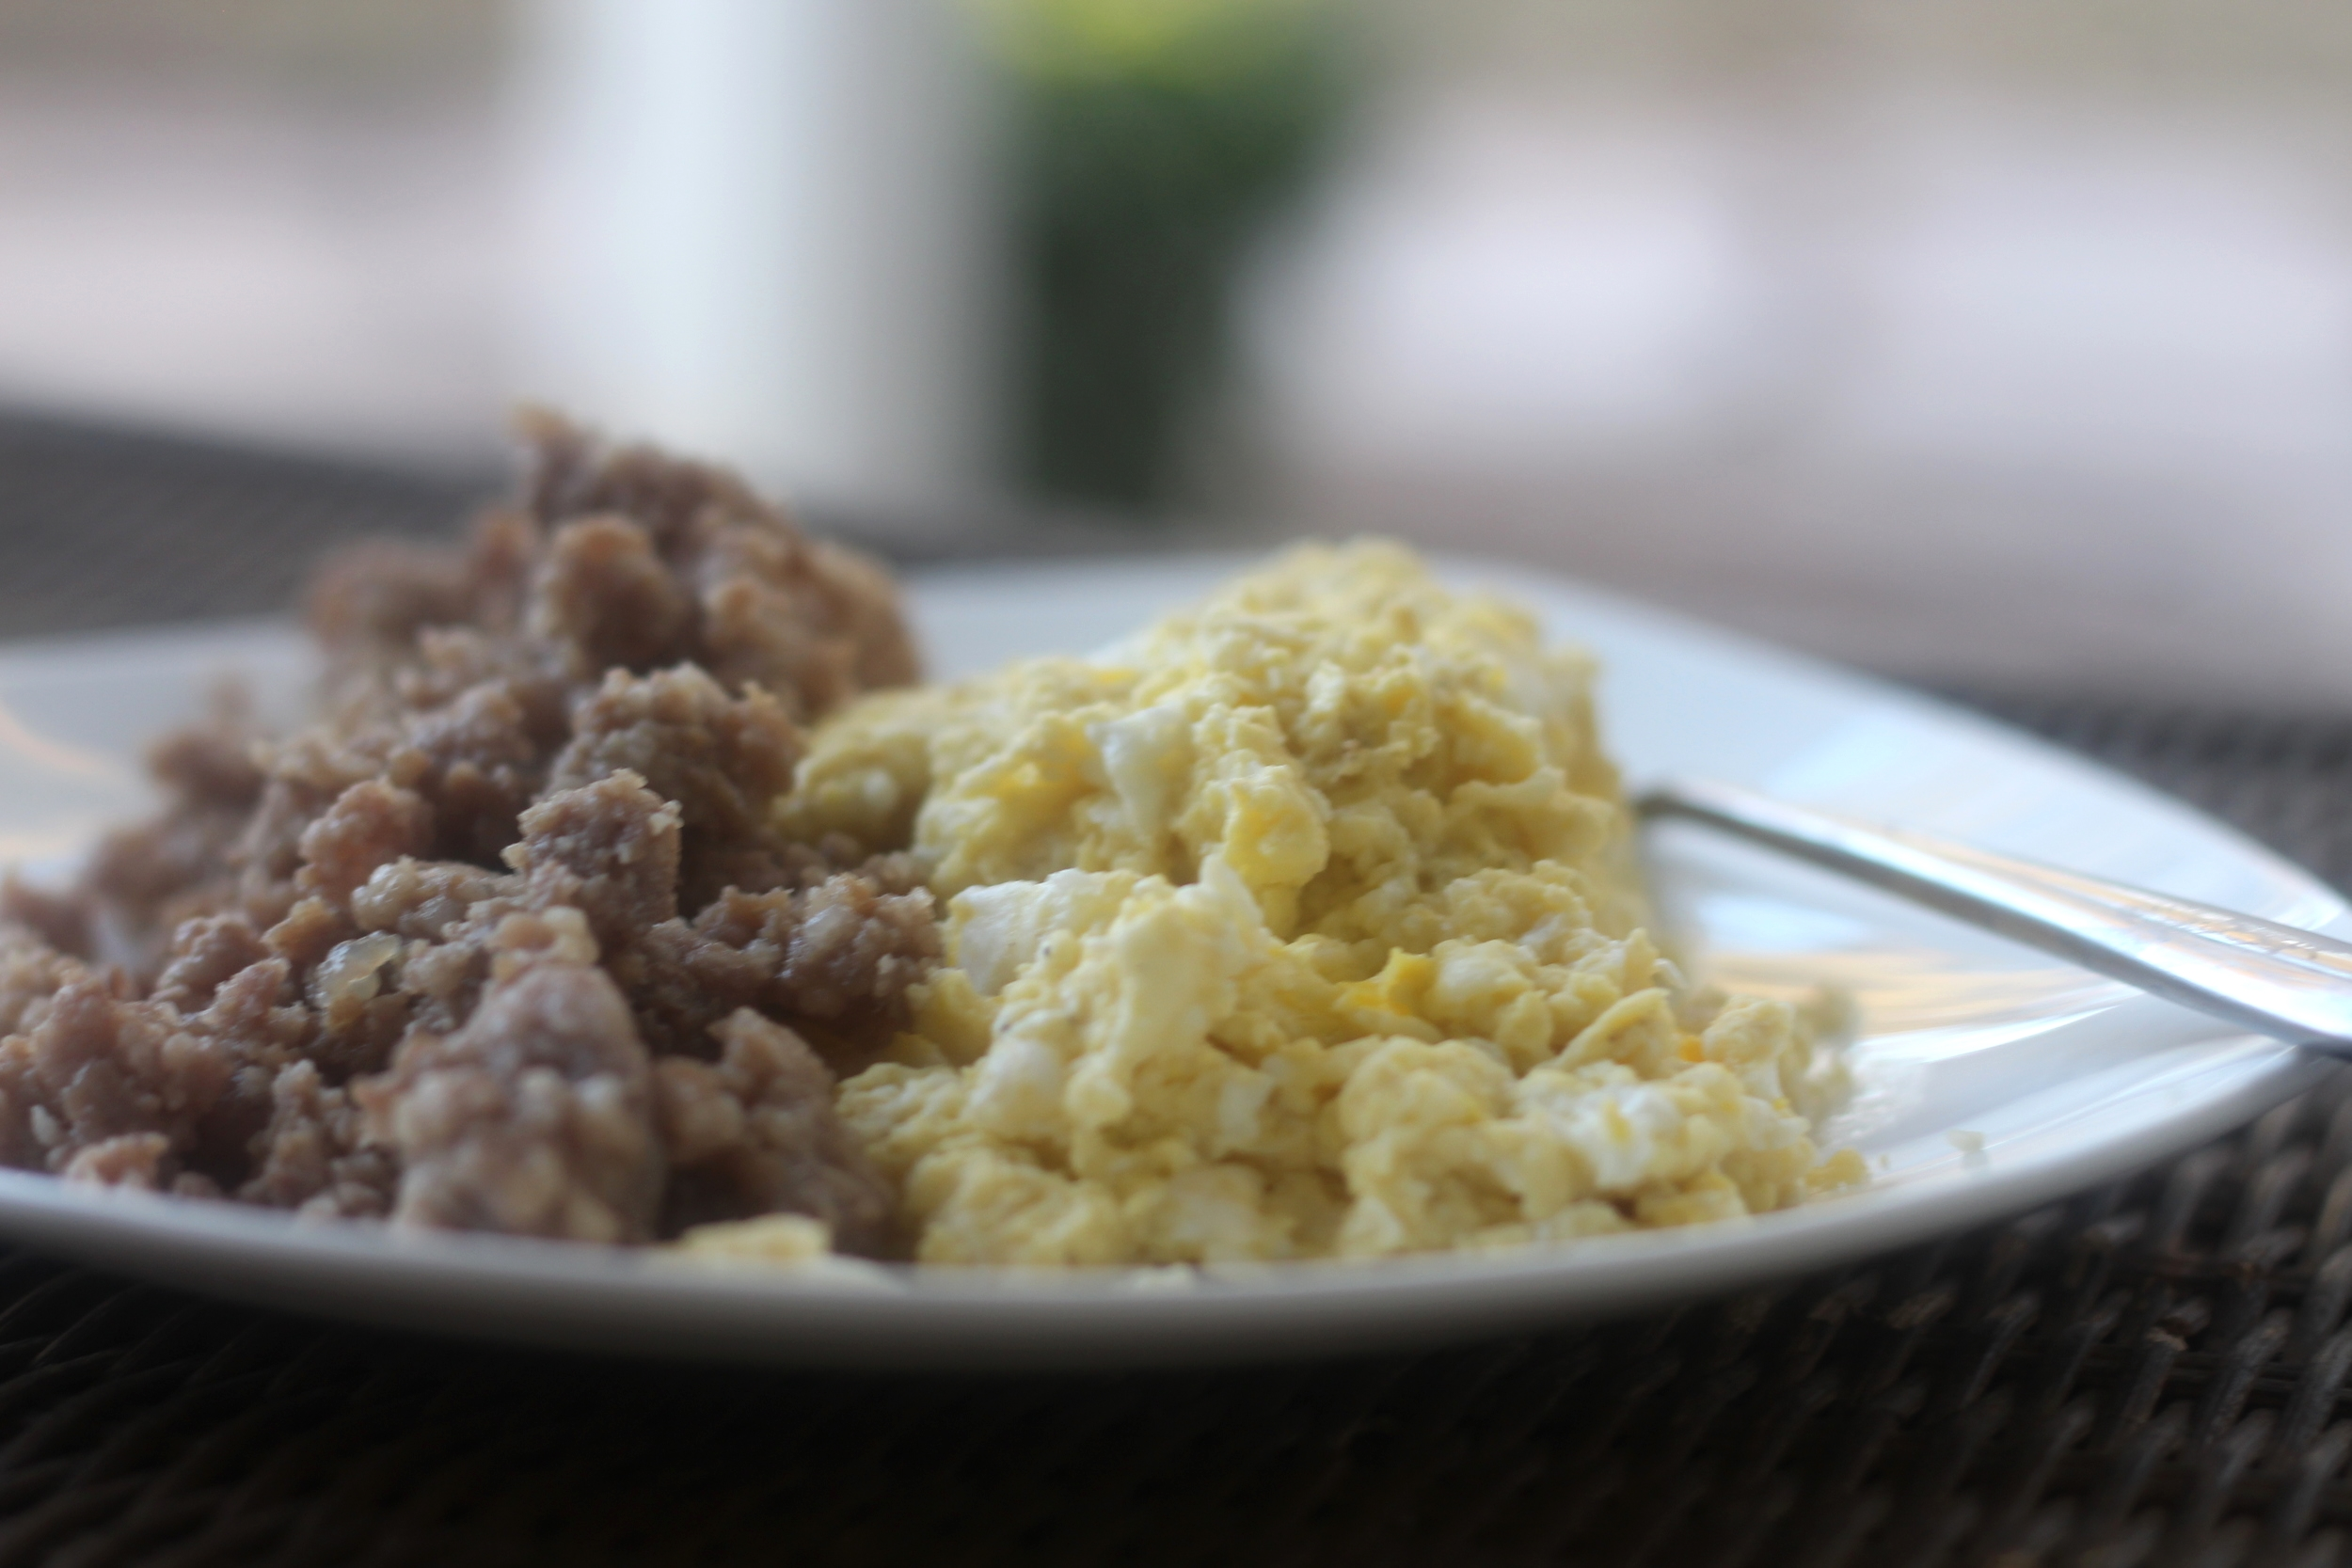 Breakfast this morning! Eggs and sausage weighed and measured (hubs does that part)